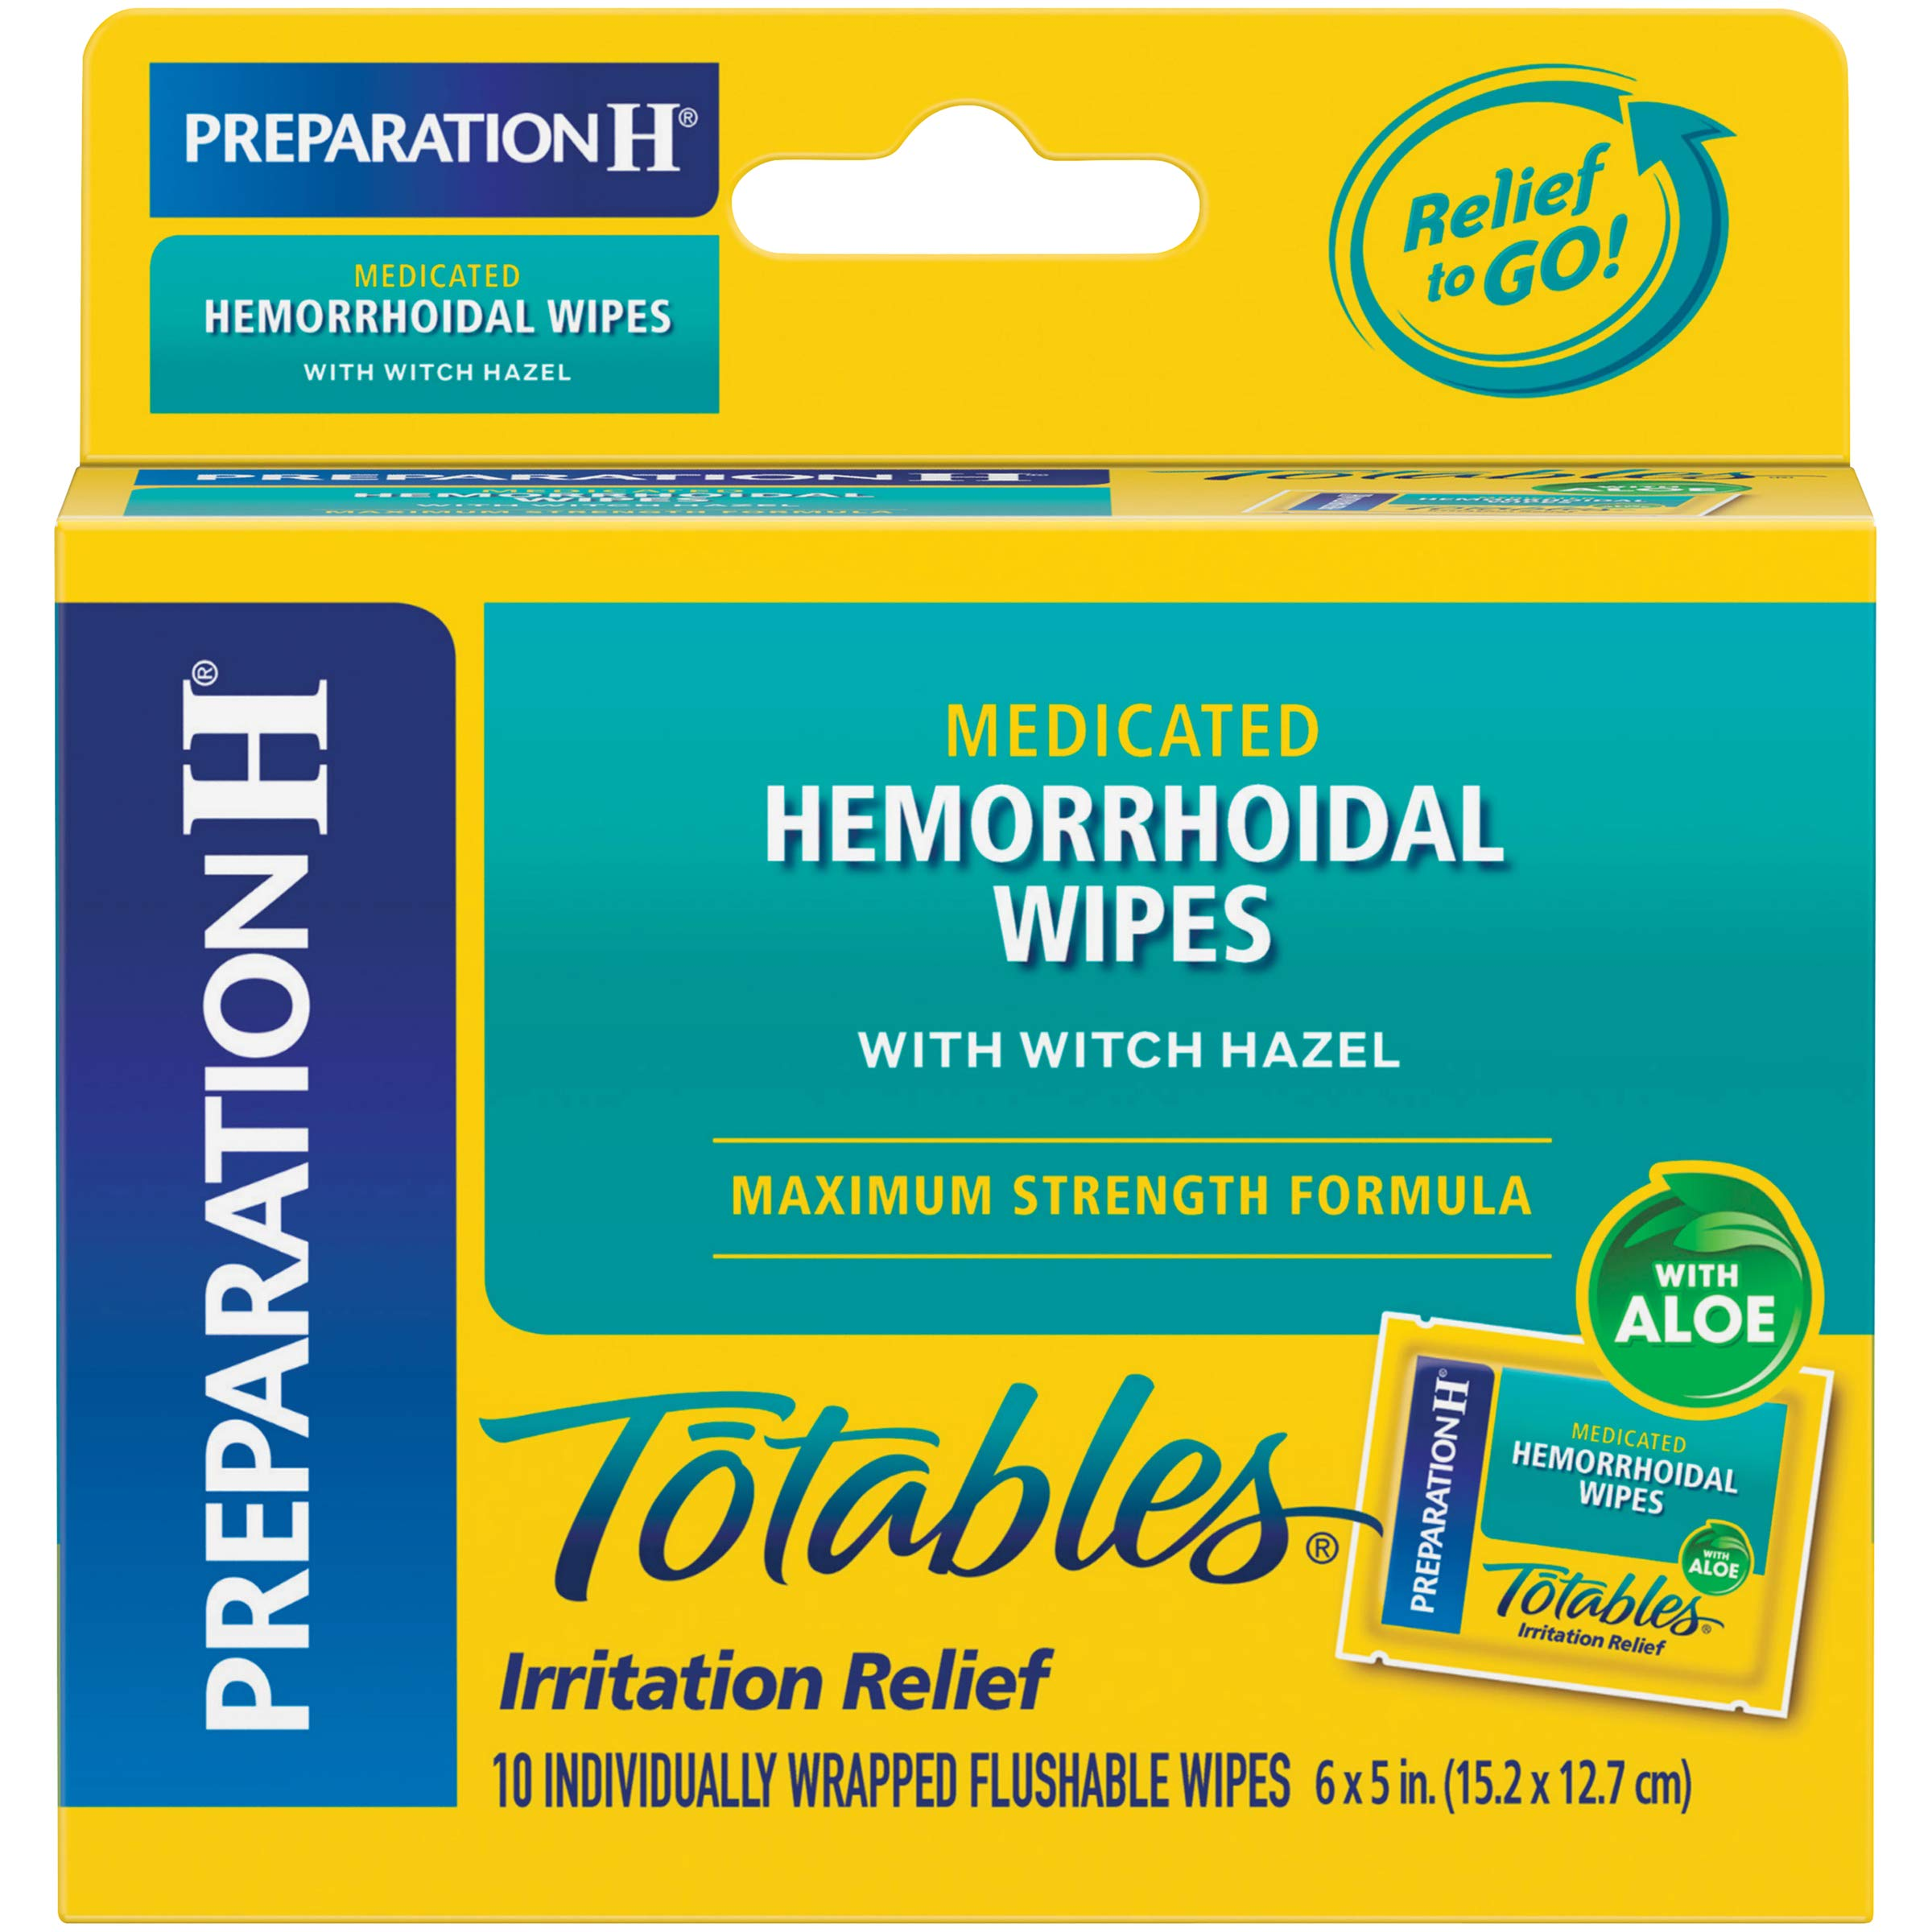 Preparation H (10 Count) Flushable Medicated Hemorrhoid Wipes, Maximum Strength Relief with Witch Hazel and Aloe, Irritation Relief Wipes to Go, (Pack of 2)